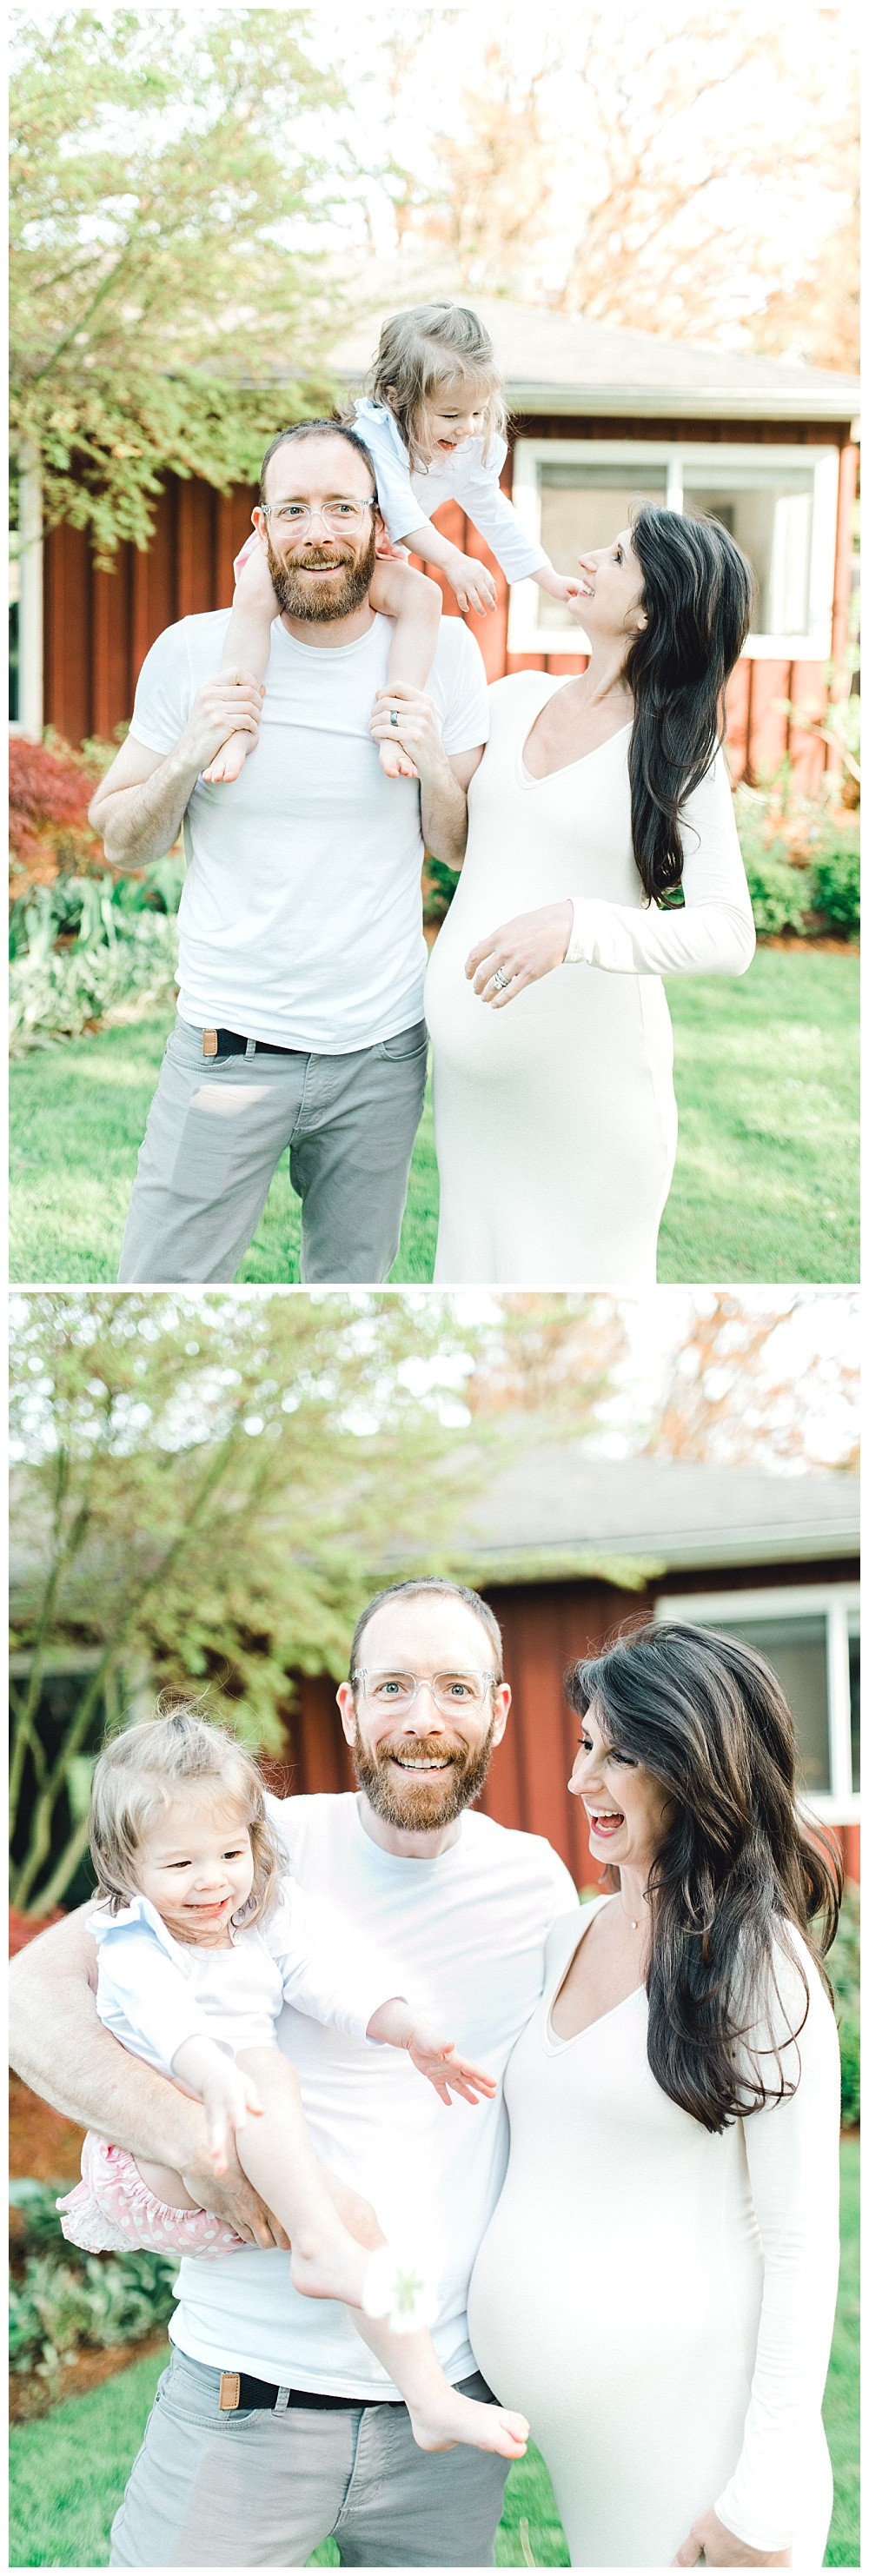 outdoor maternity photography with happy toddler girl in dad's arms